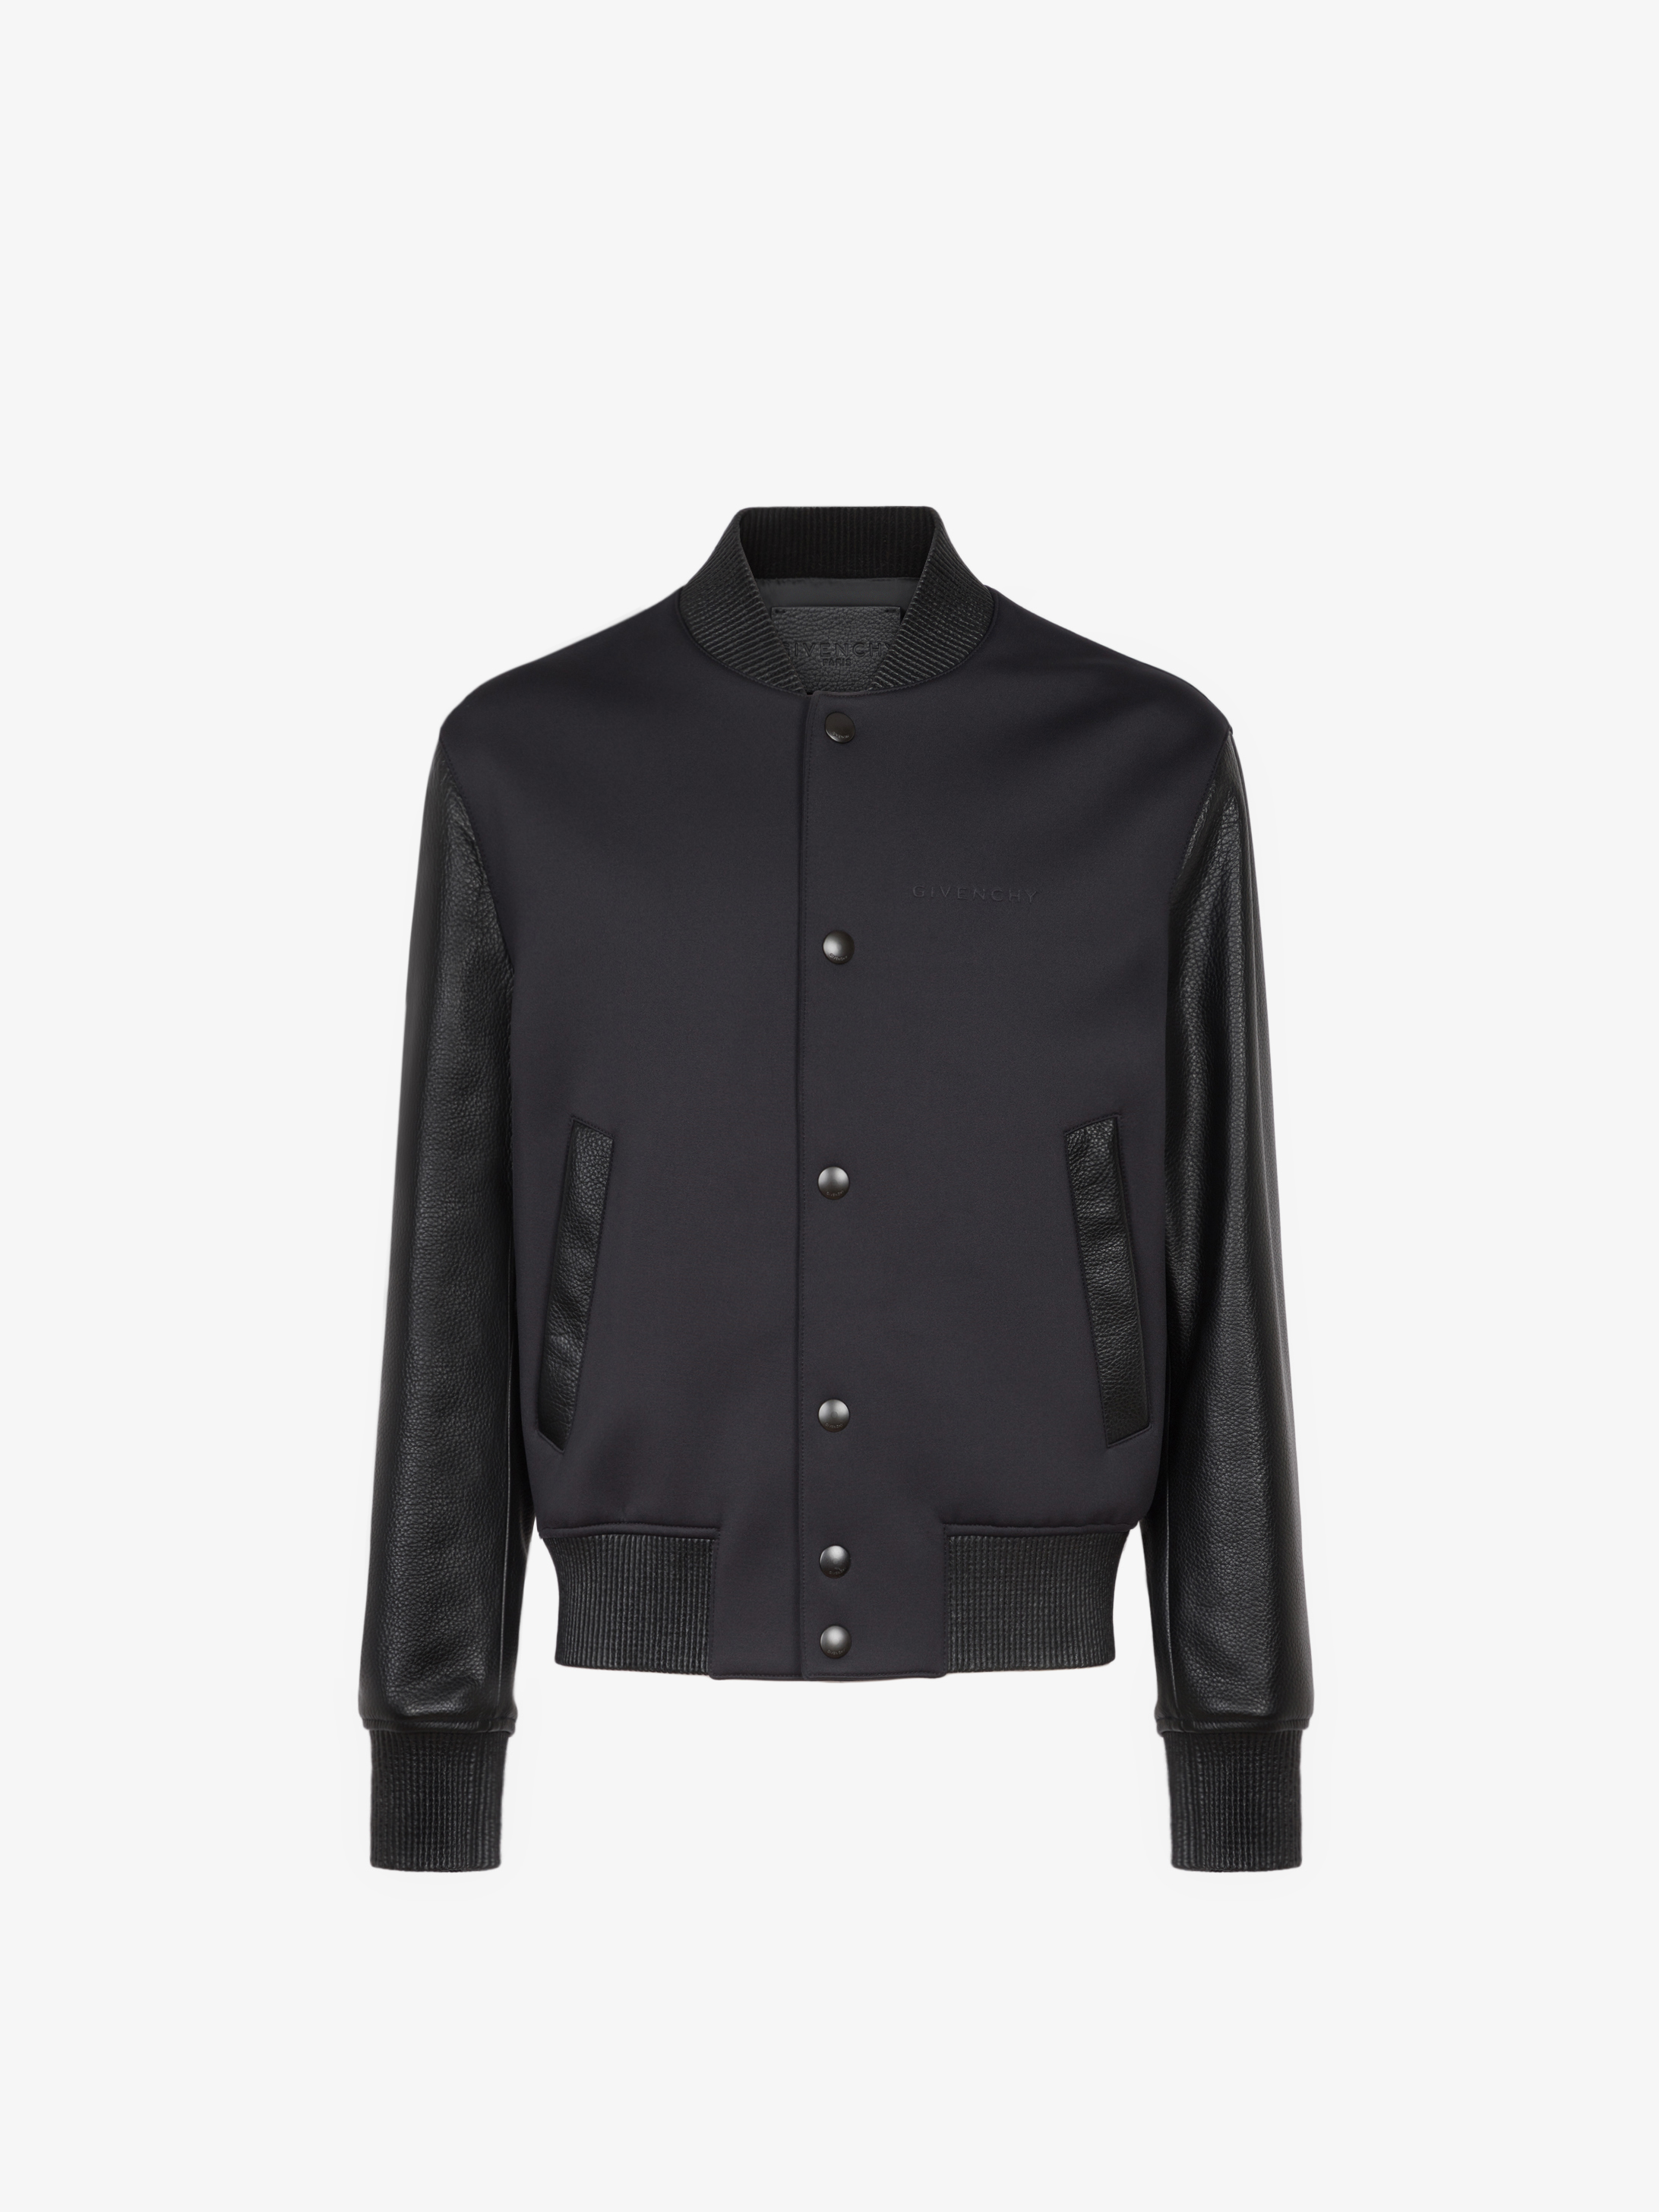 Bomber jacket in neoprene and leather